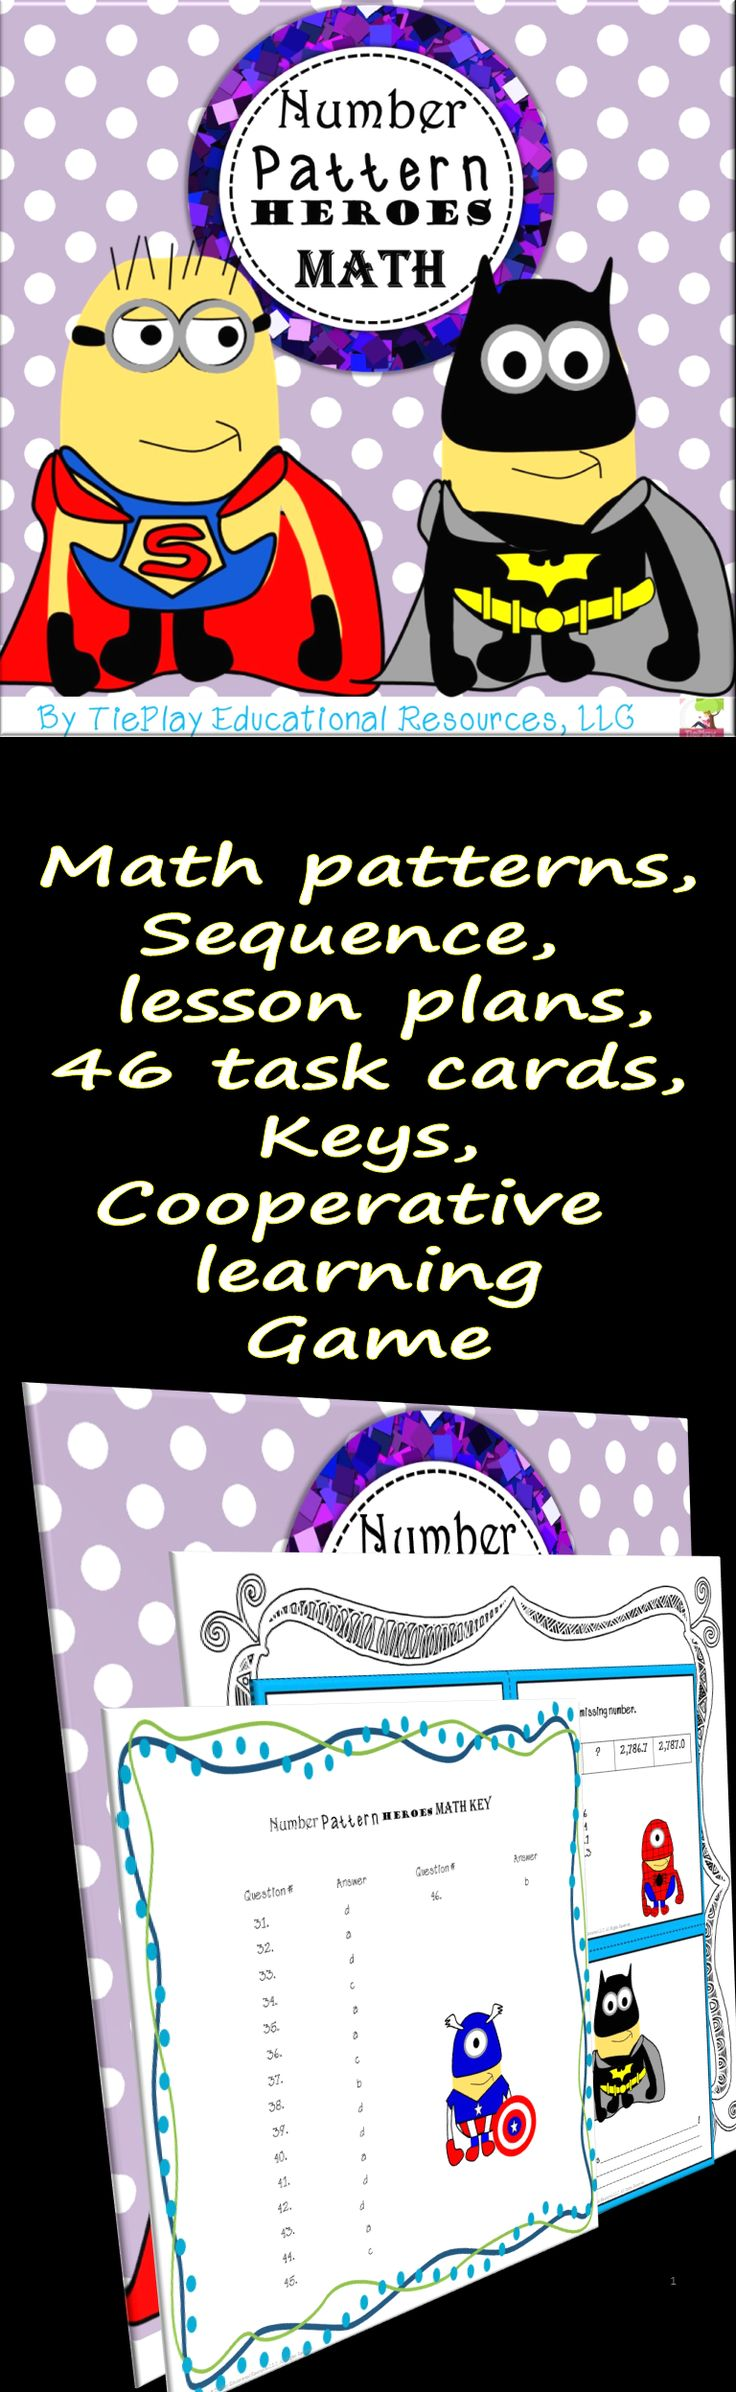 Price $5.50 Bello! Pwede na? In this fun math pattern lesson, learners answer questions after lesson plans activities. Number Pattern Heroes Math can be used as an extension, class game, cooperative group review or as a math center. This lesson includes 46 task cards, keys, lesson plans, links, and song activities.